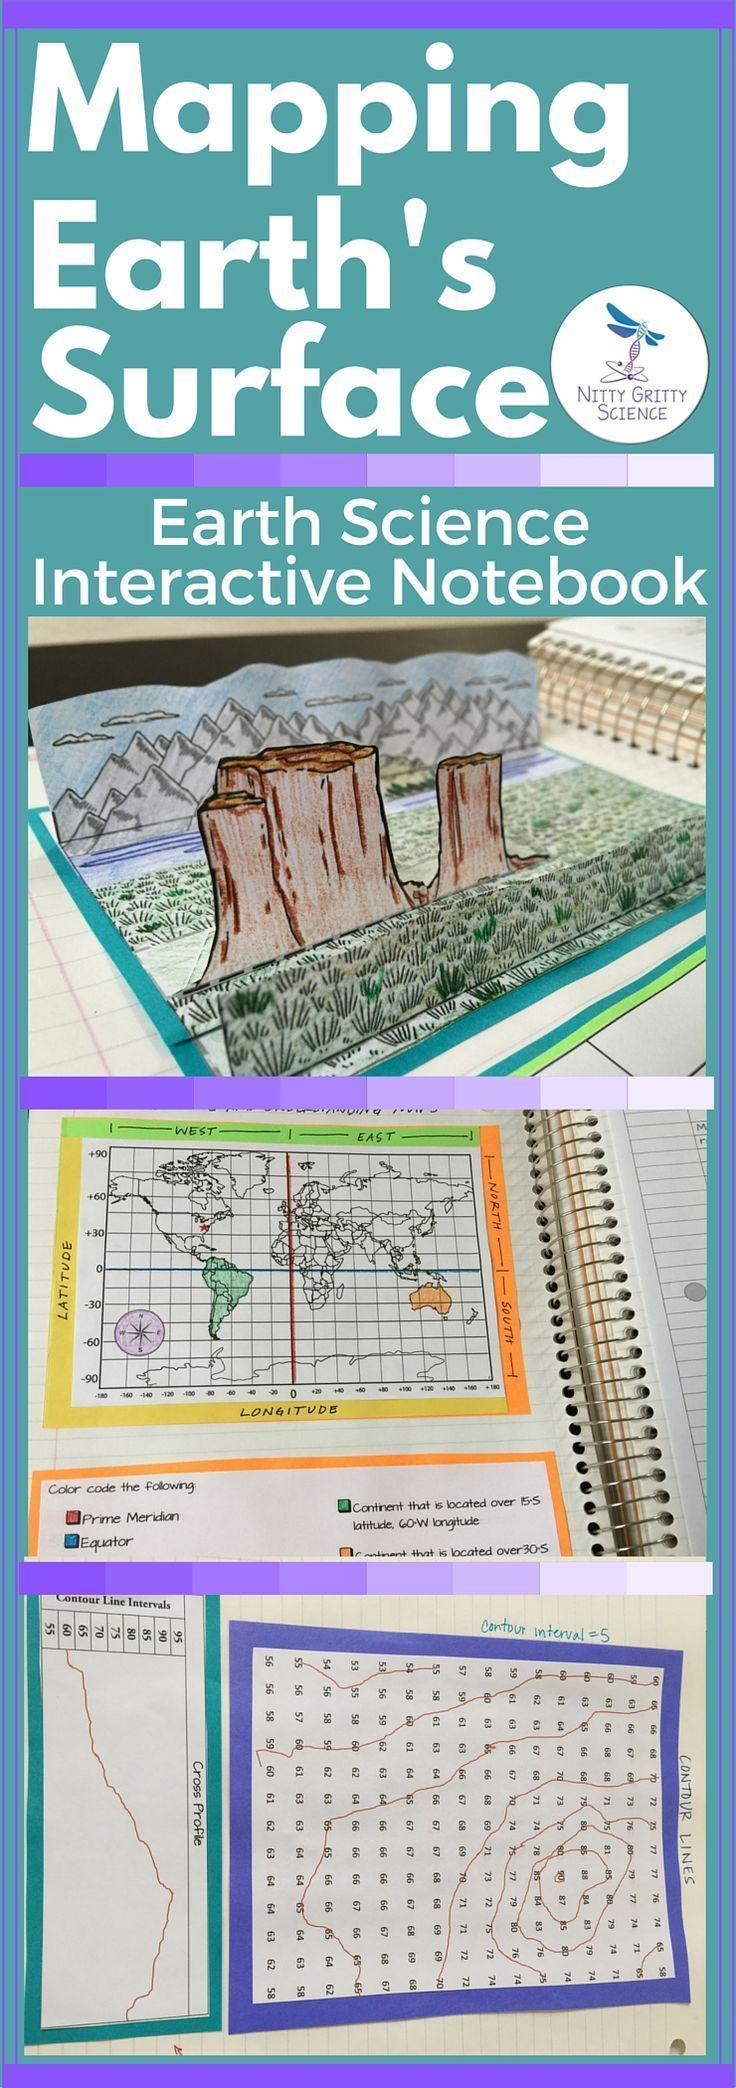 The Earth Science Interactive Notebook: Mapping Earth�s Surface chapter will showcase student�s ability to: �Identify main types of landforms �Explain the topography of an area �Explain how maps and globes represent Earth�s surface �Identify latitude and